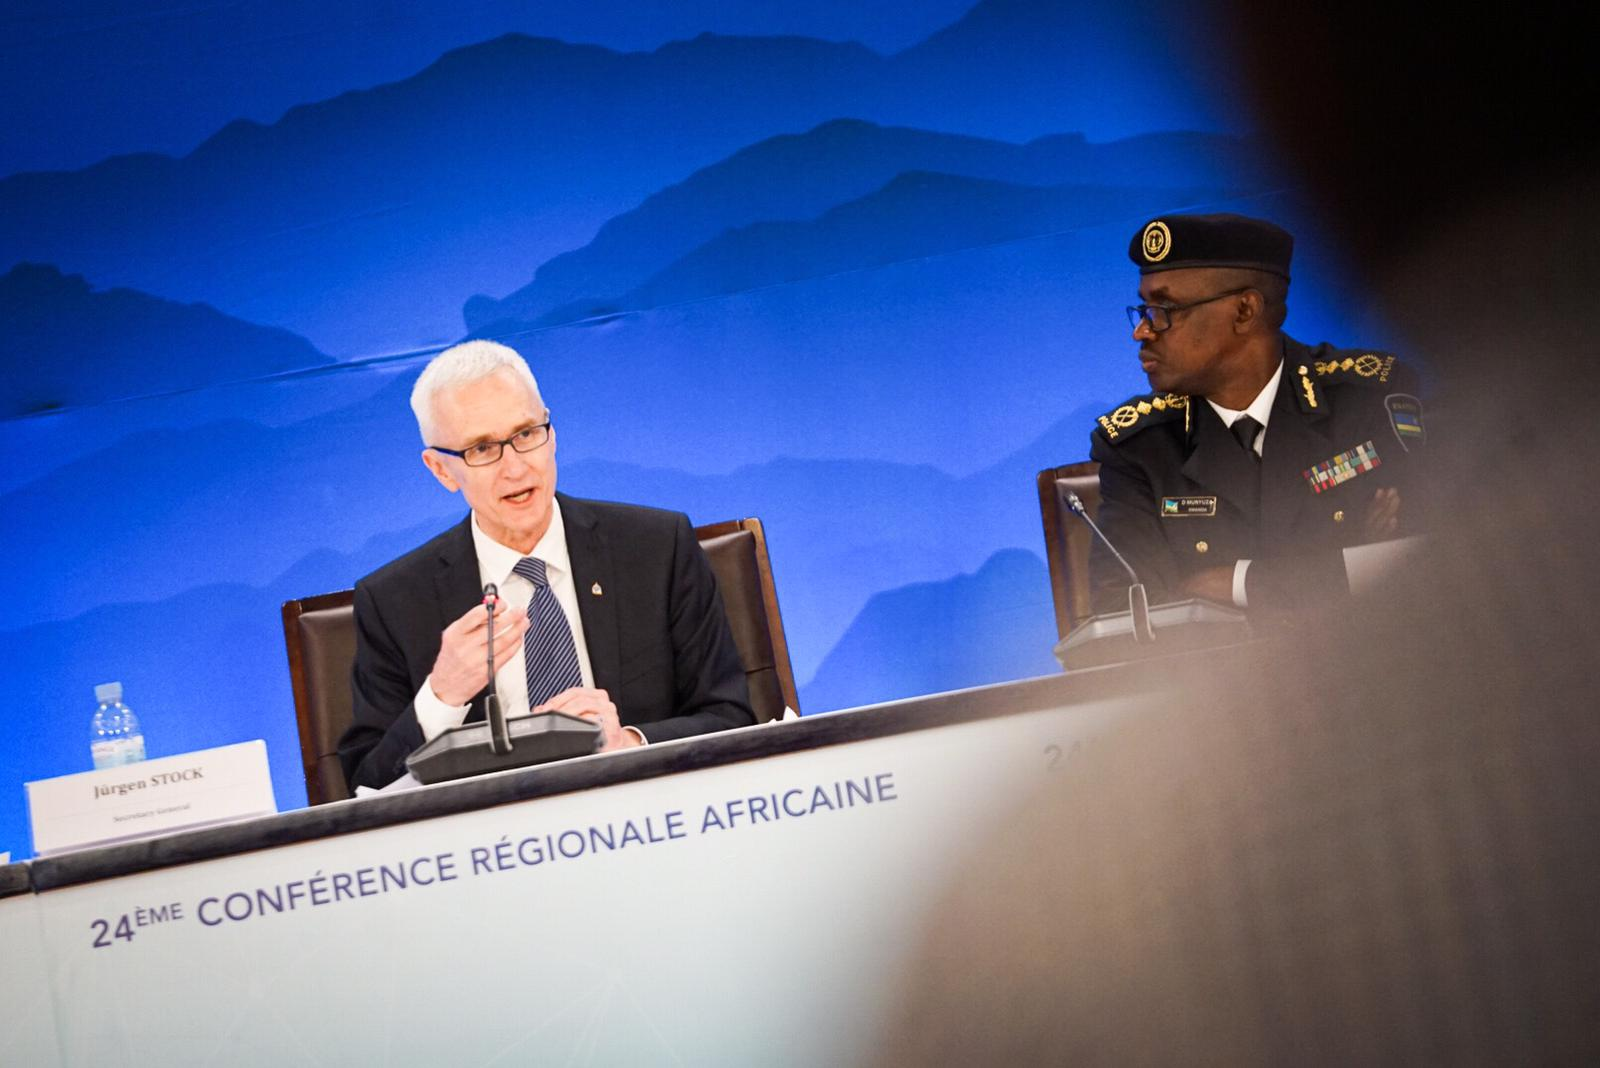 Secretary General Jürgen Stock said the conference will help strengthen regional and international police cooperation to better serve Africa's security needs.